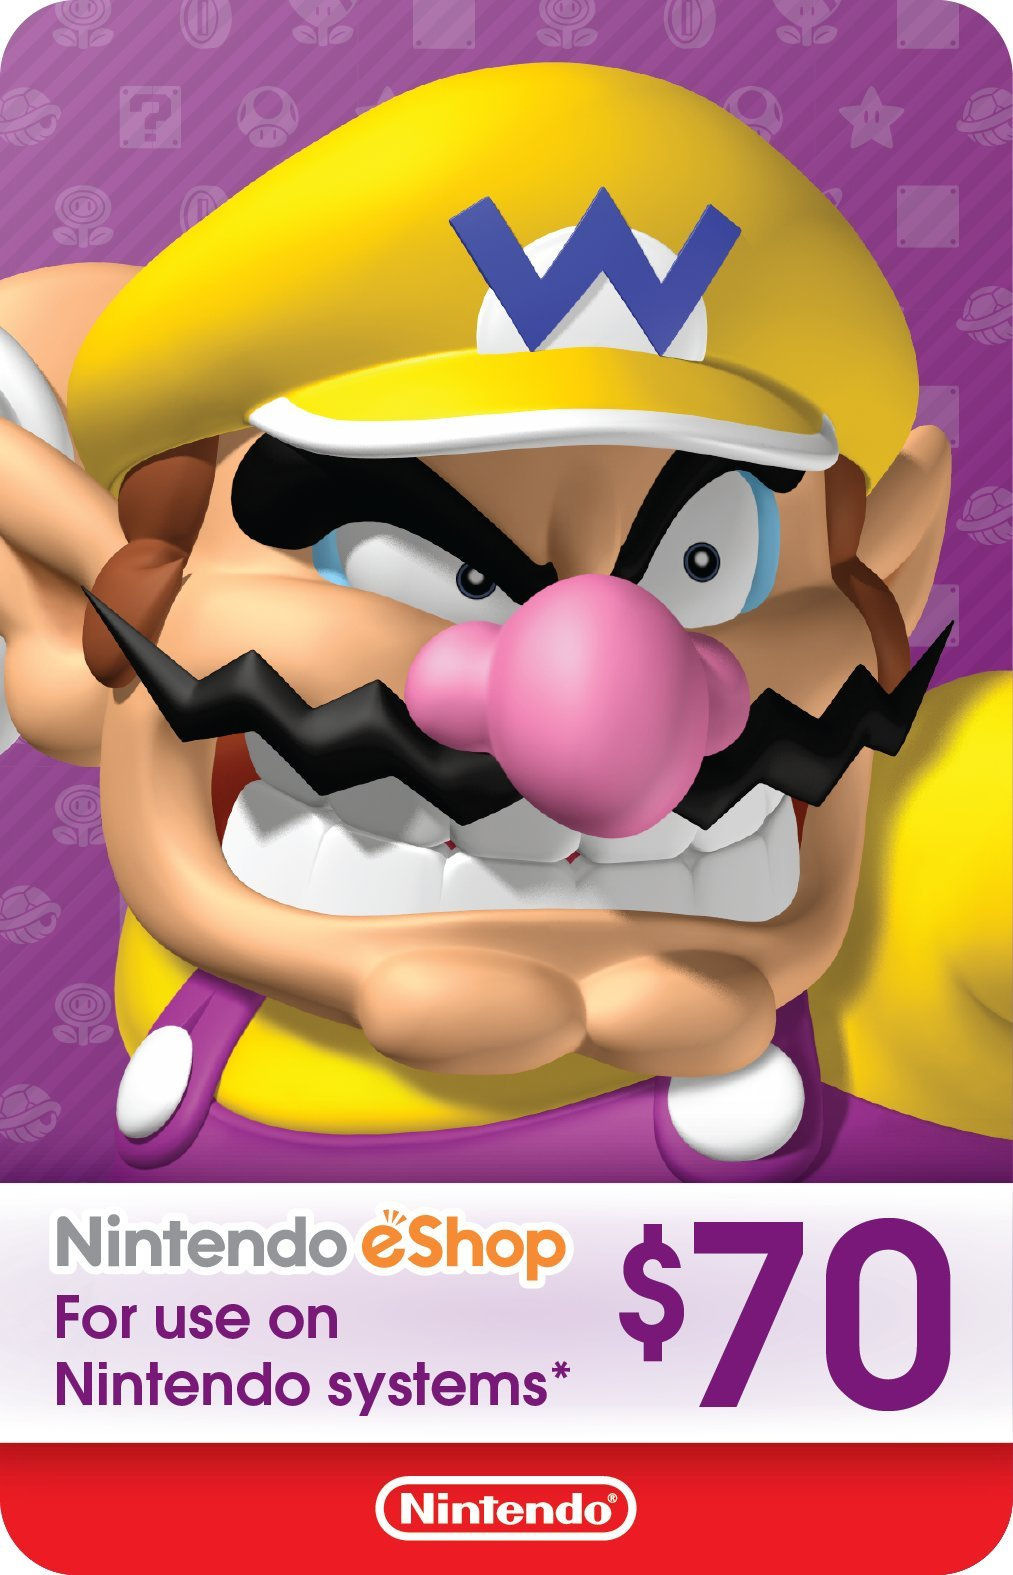 $70 Nintendo eShop Gift Card [Digital Code] by Nintendo